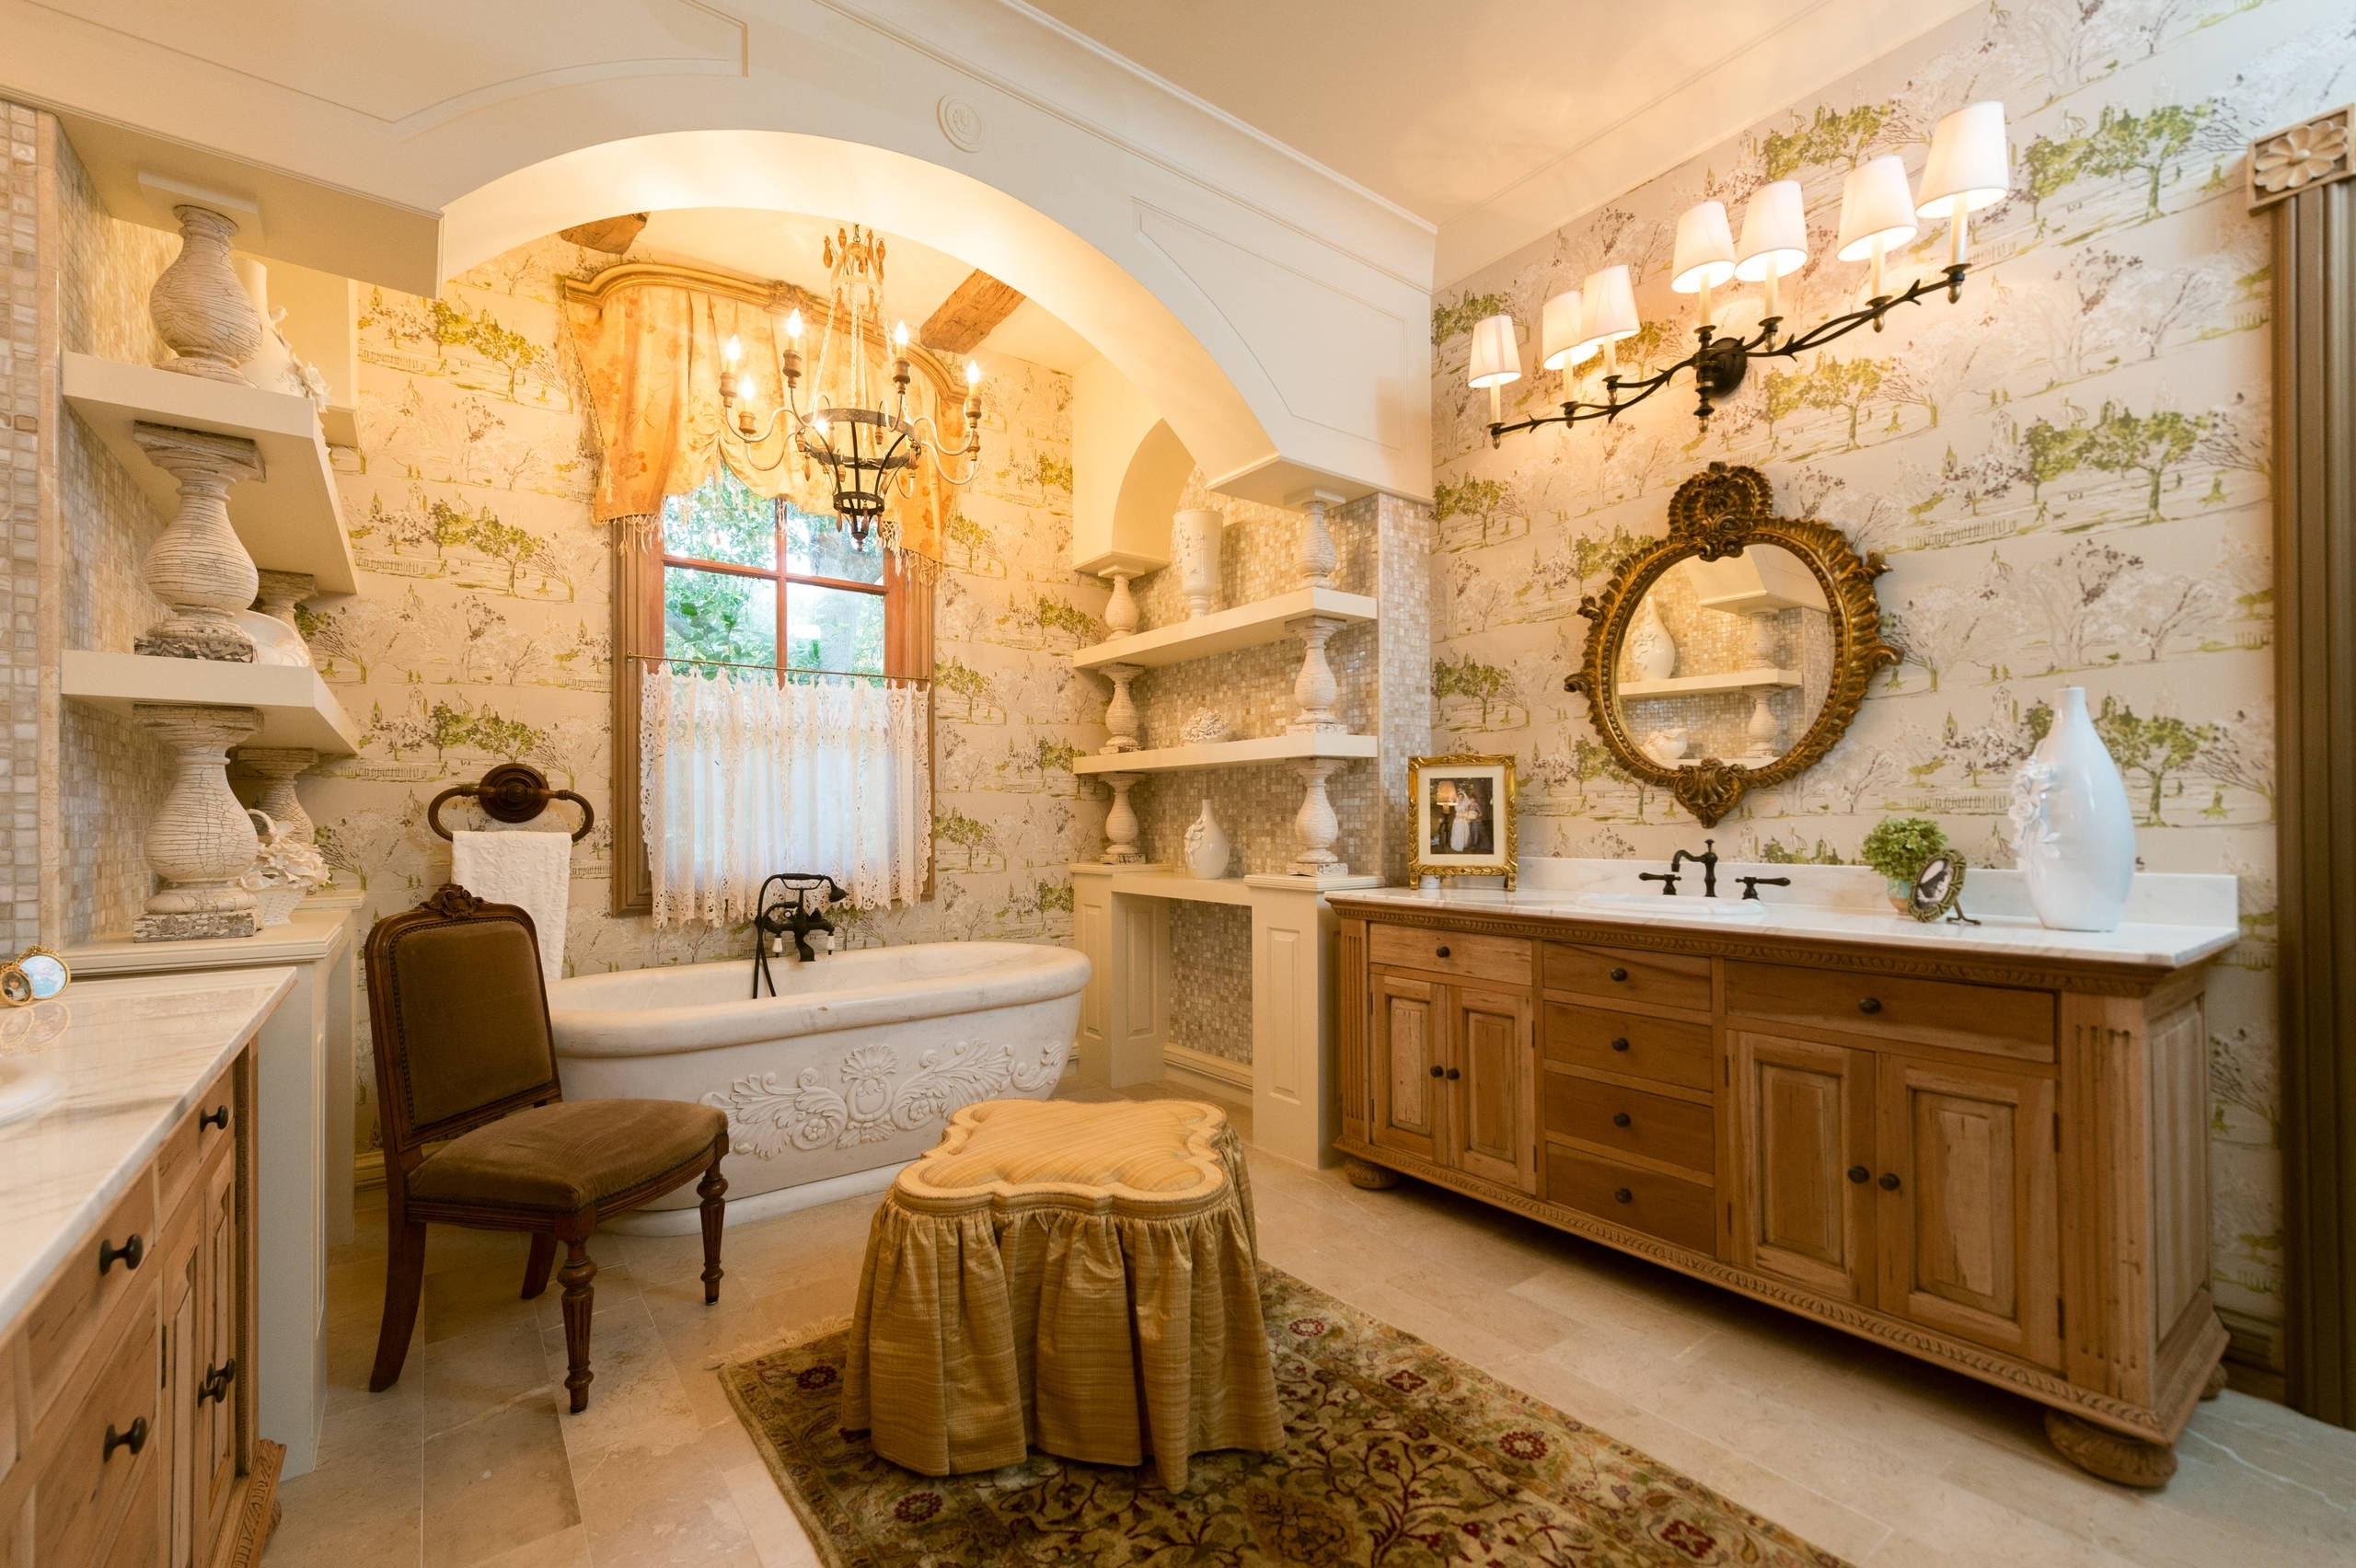 75 Beautiful French Country Bathroom Pictures & Ideas 10+ French Provincial Bathroom Inspirations